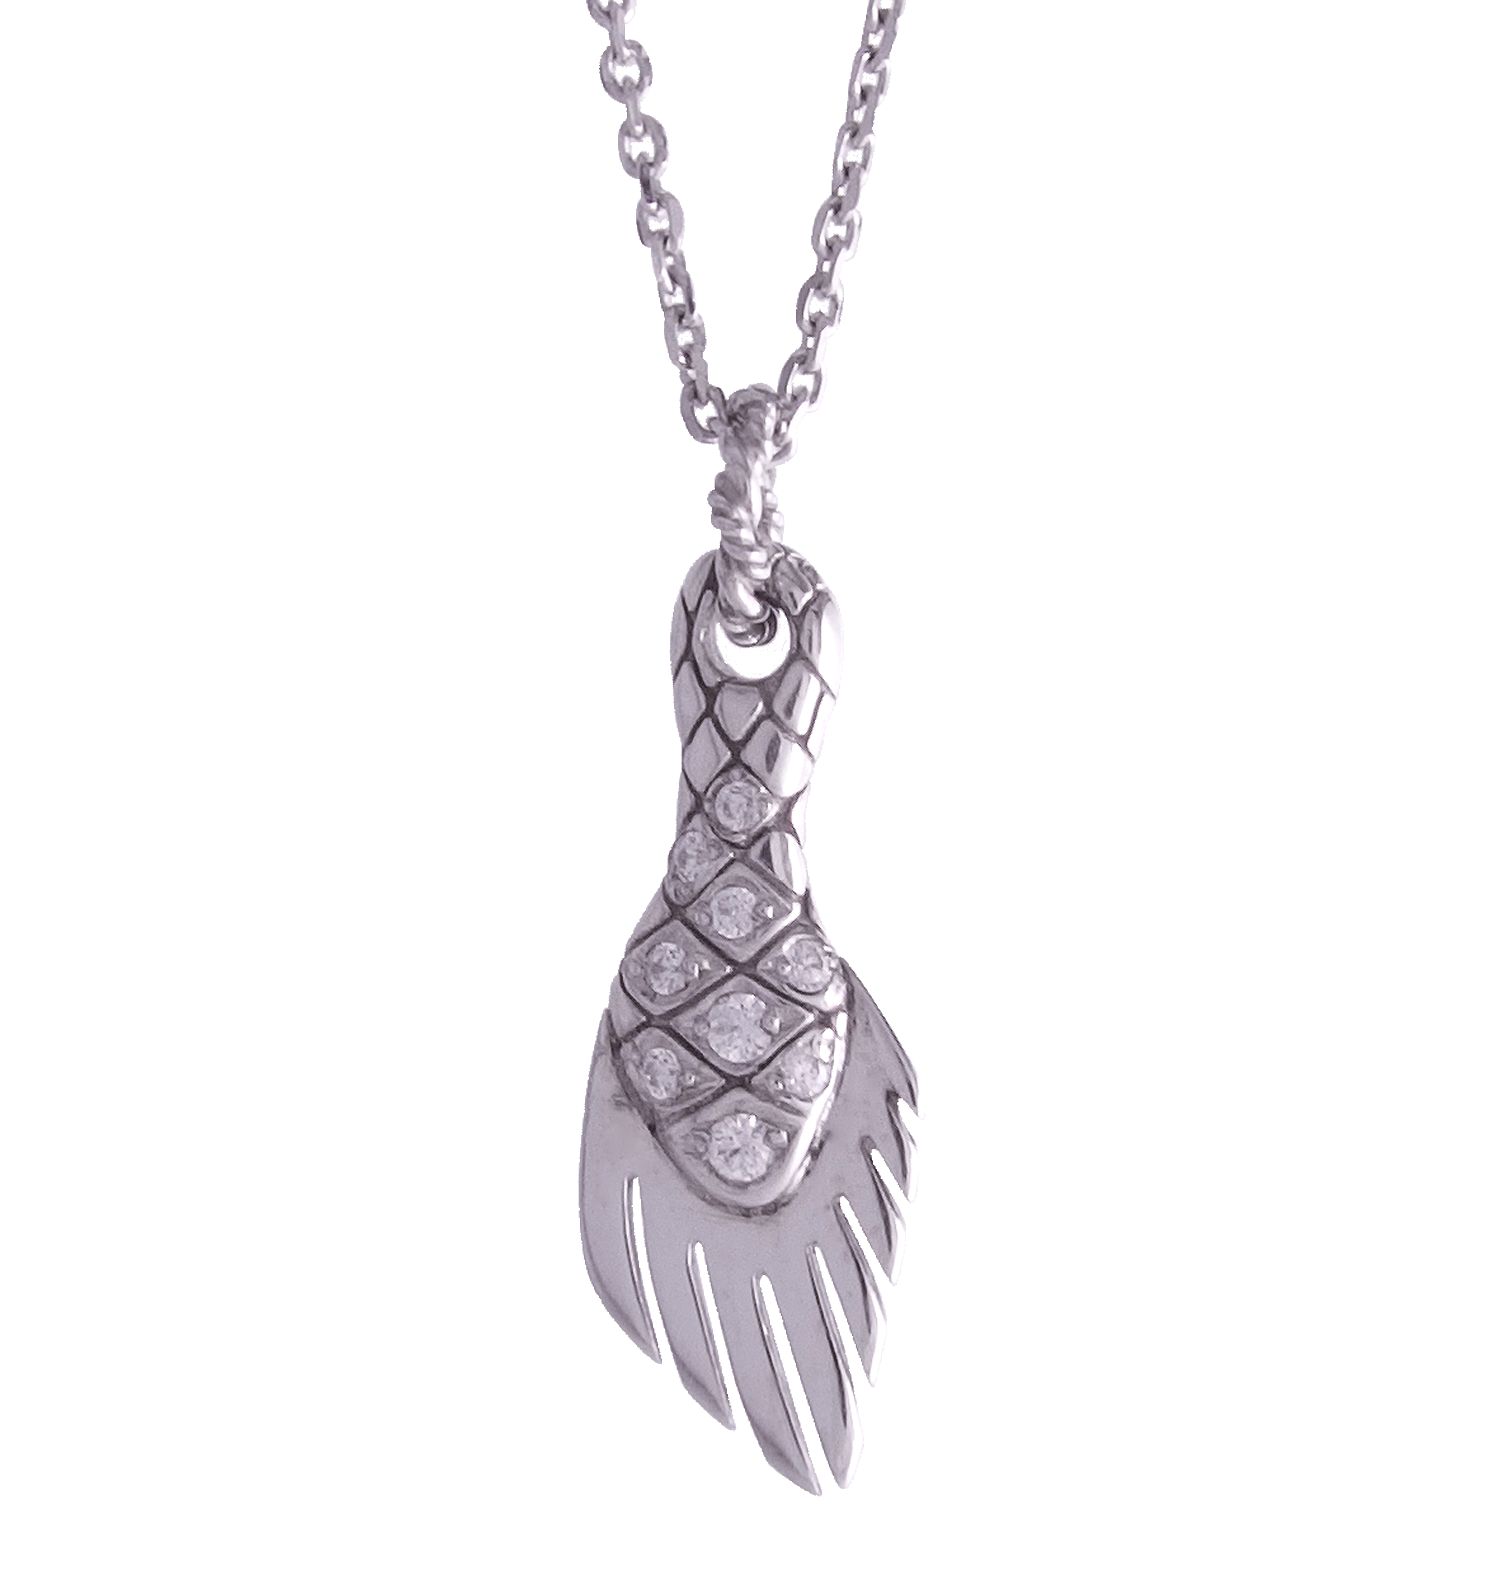 Ancientfish's Scale Necklace / エンシェントフィッシュズ・スケール・ネックレス